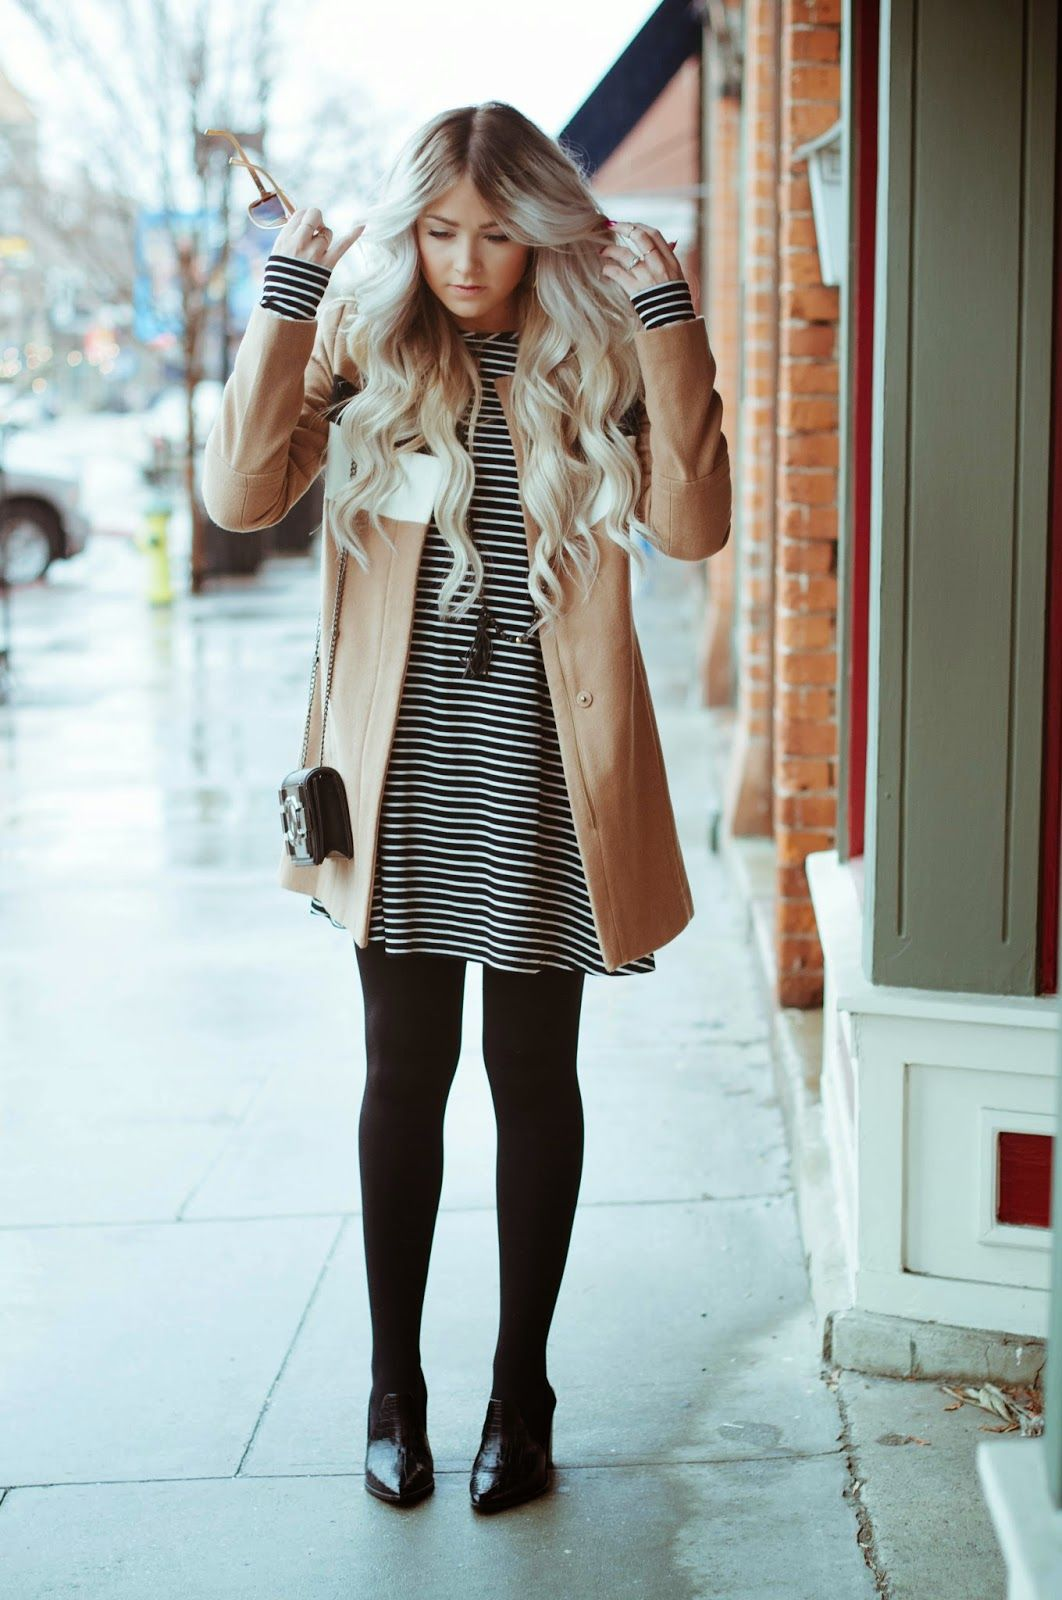 Winter Fashion Essentials You Need To Have In Your Closet | Black Tights Cara Loren And Camel Coat